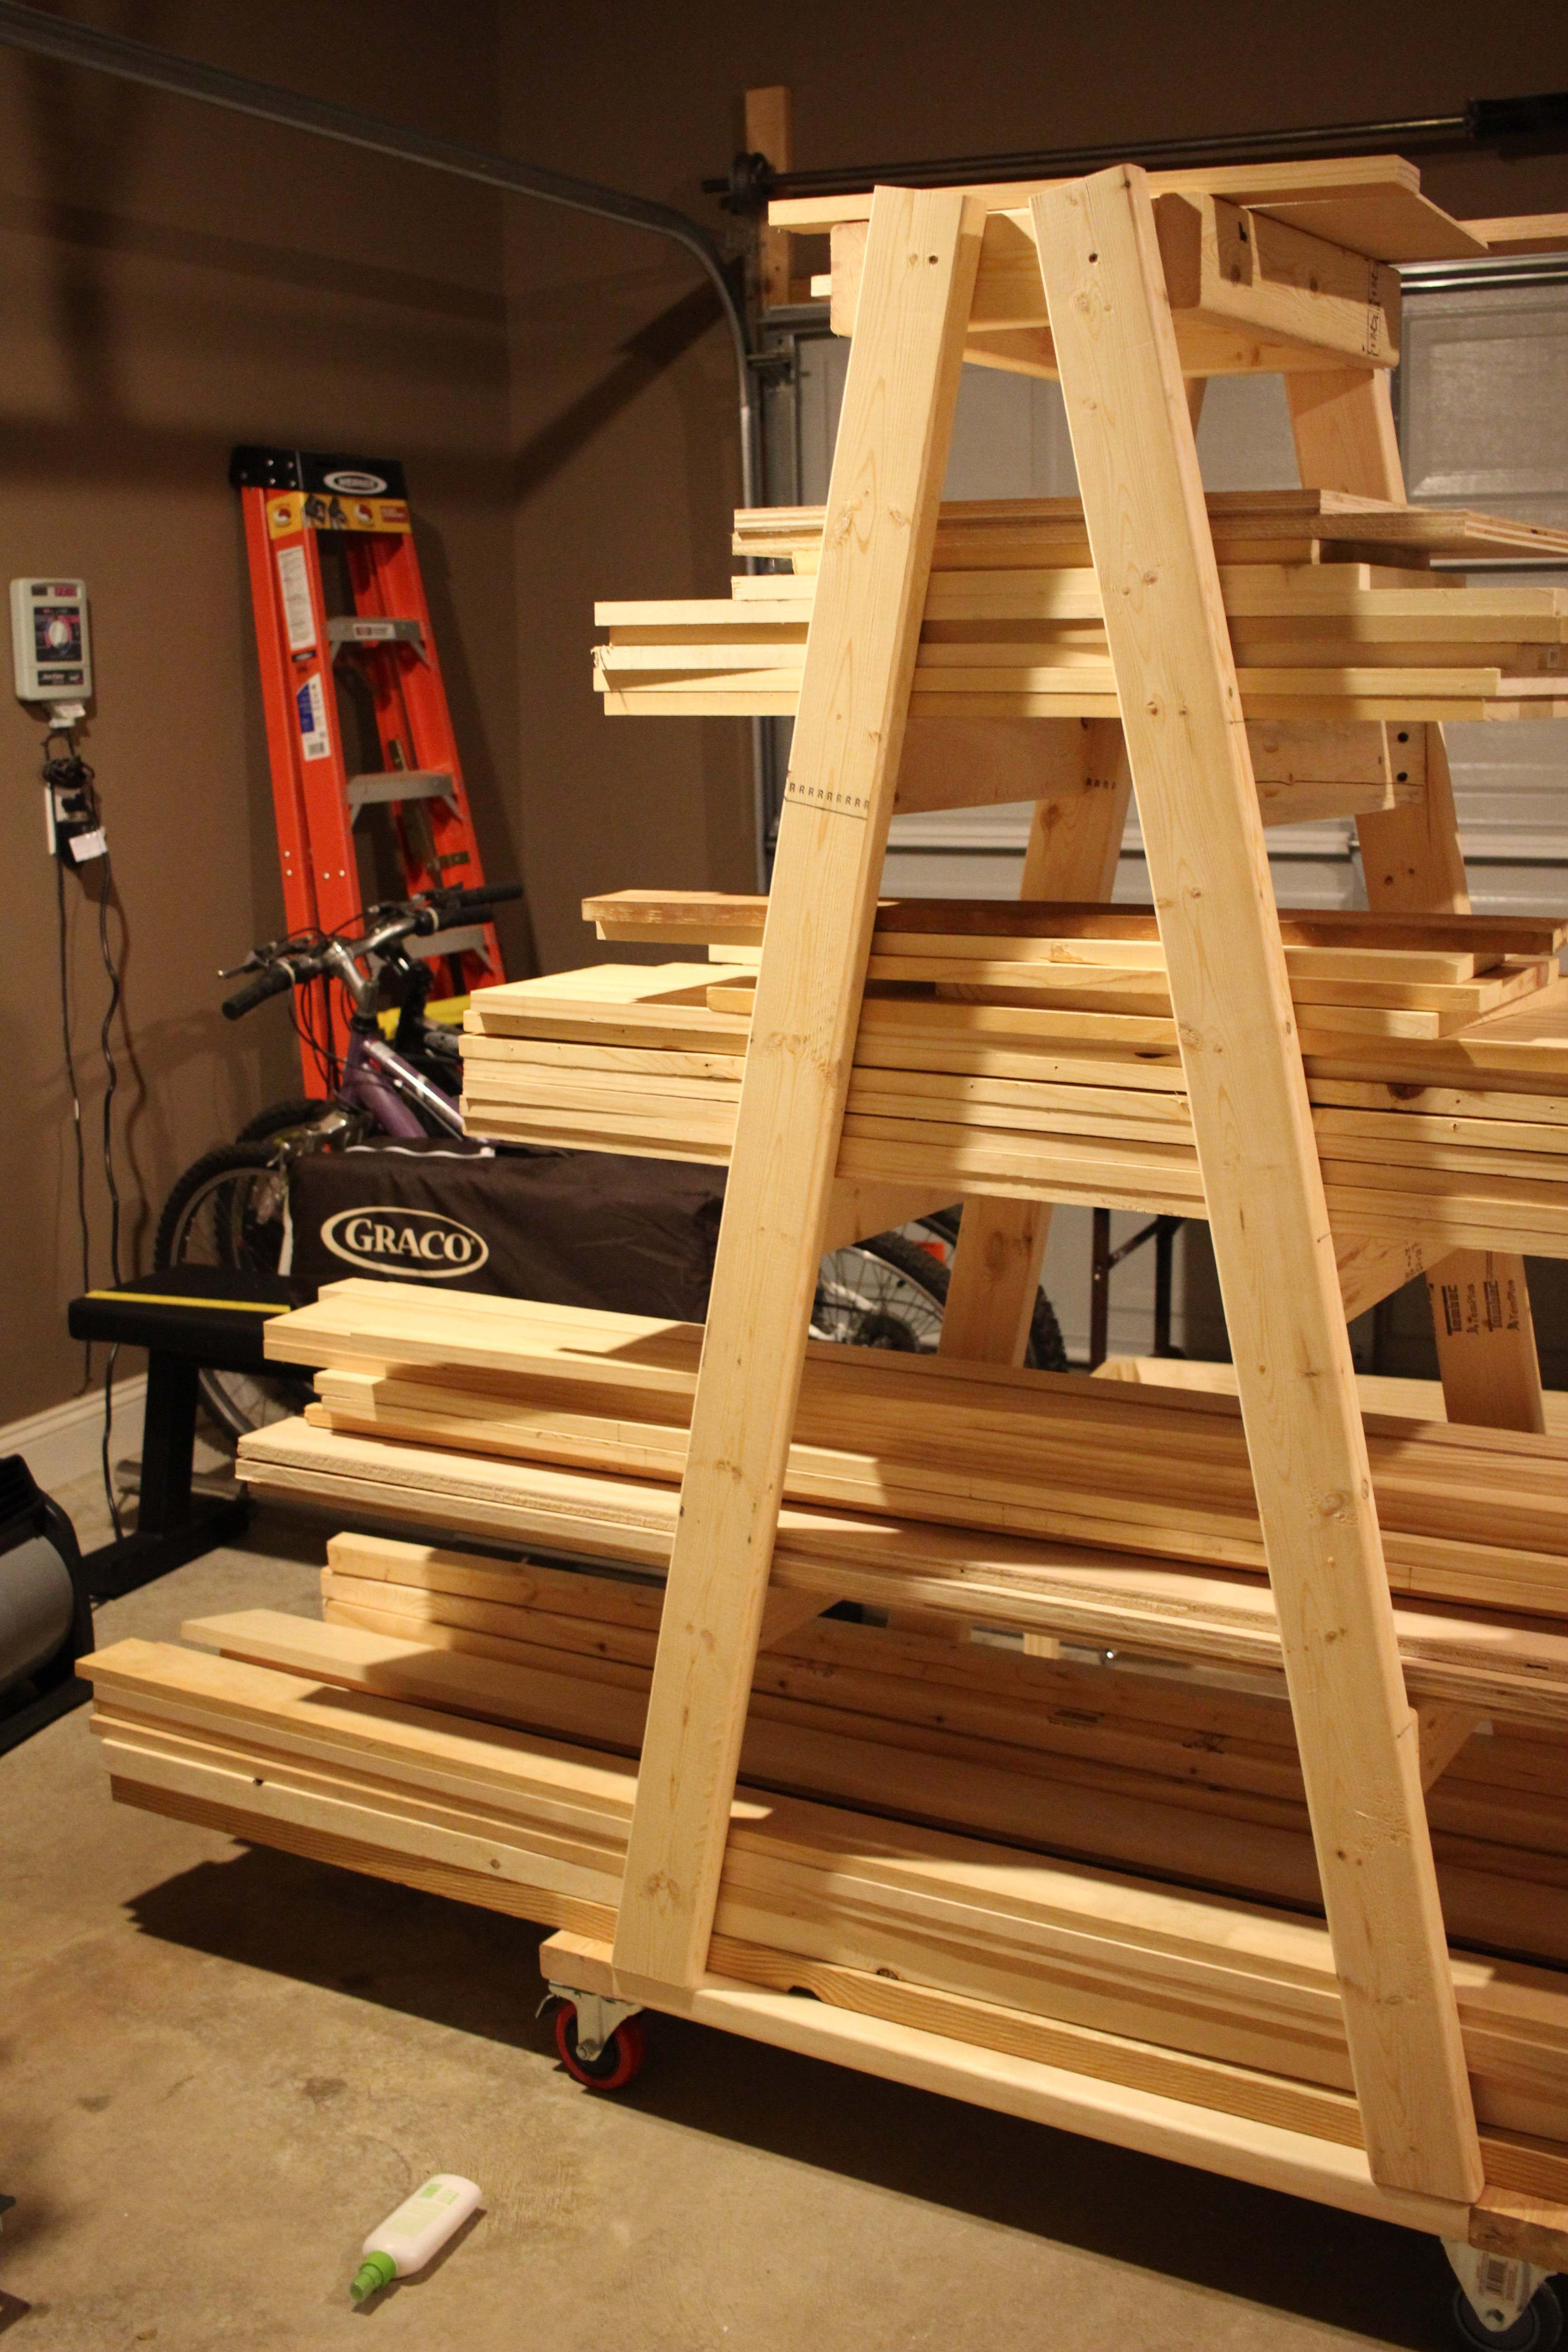 Best ideas about DIY Storage Rack . Save or Pin DIY Mobile Lumber Rack Plans by Rogue Engineer Now.